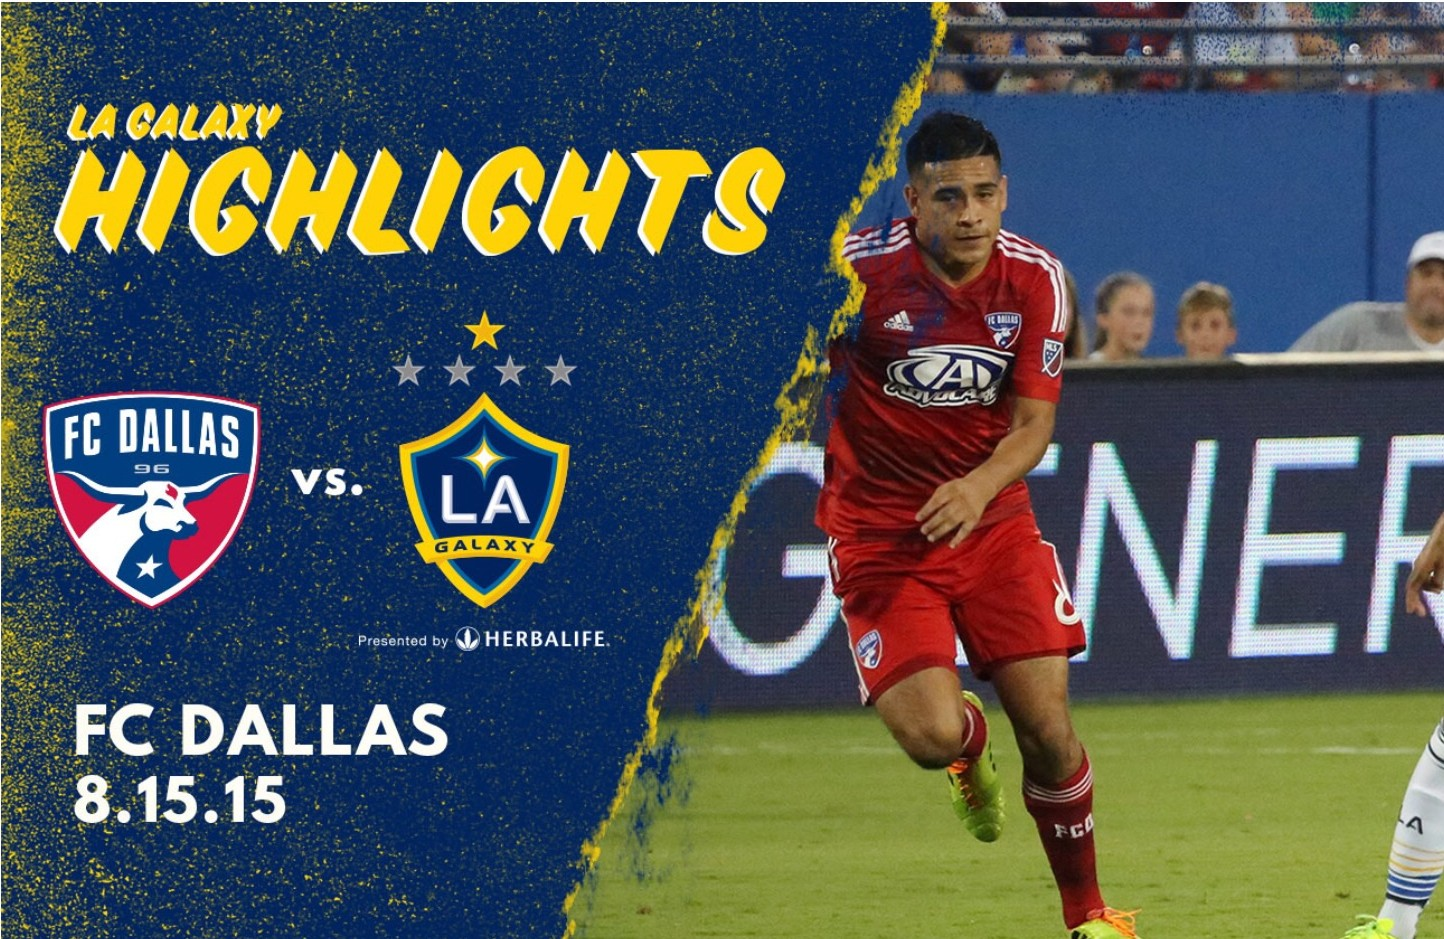 Galaxy Come from behind in victory over FC Dallas